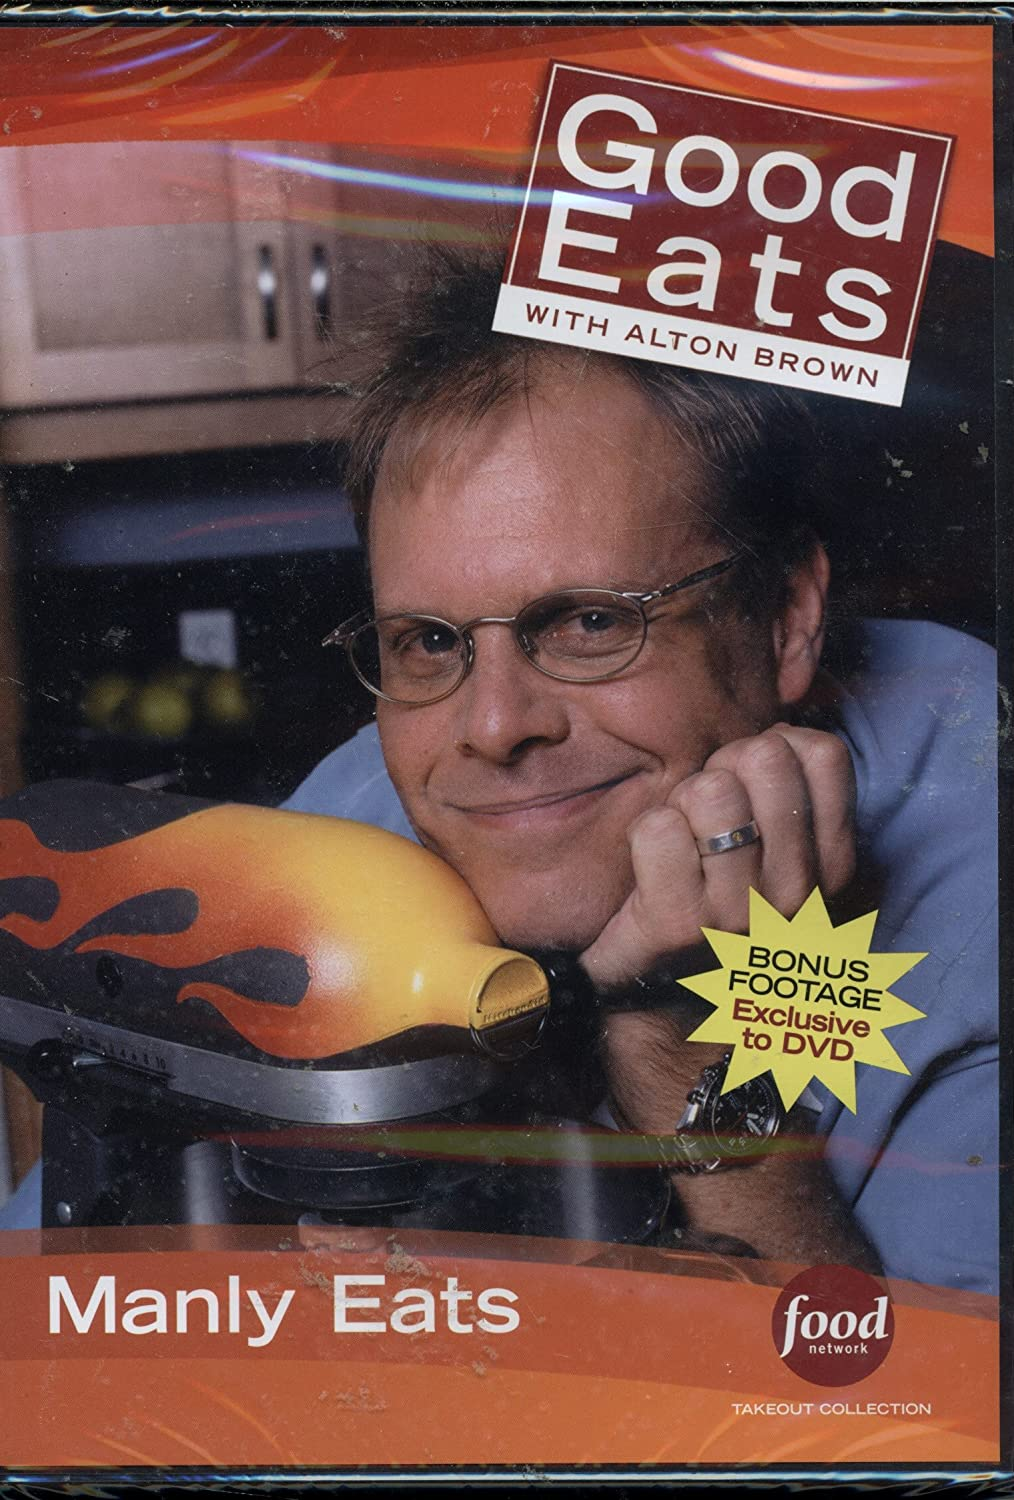 Food Network Takeout Collection DVD - Good Eats With Alton Brown Manly Eats Includes Raising the Steaks / Q (Pulled Pork) / The Man Food Shows